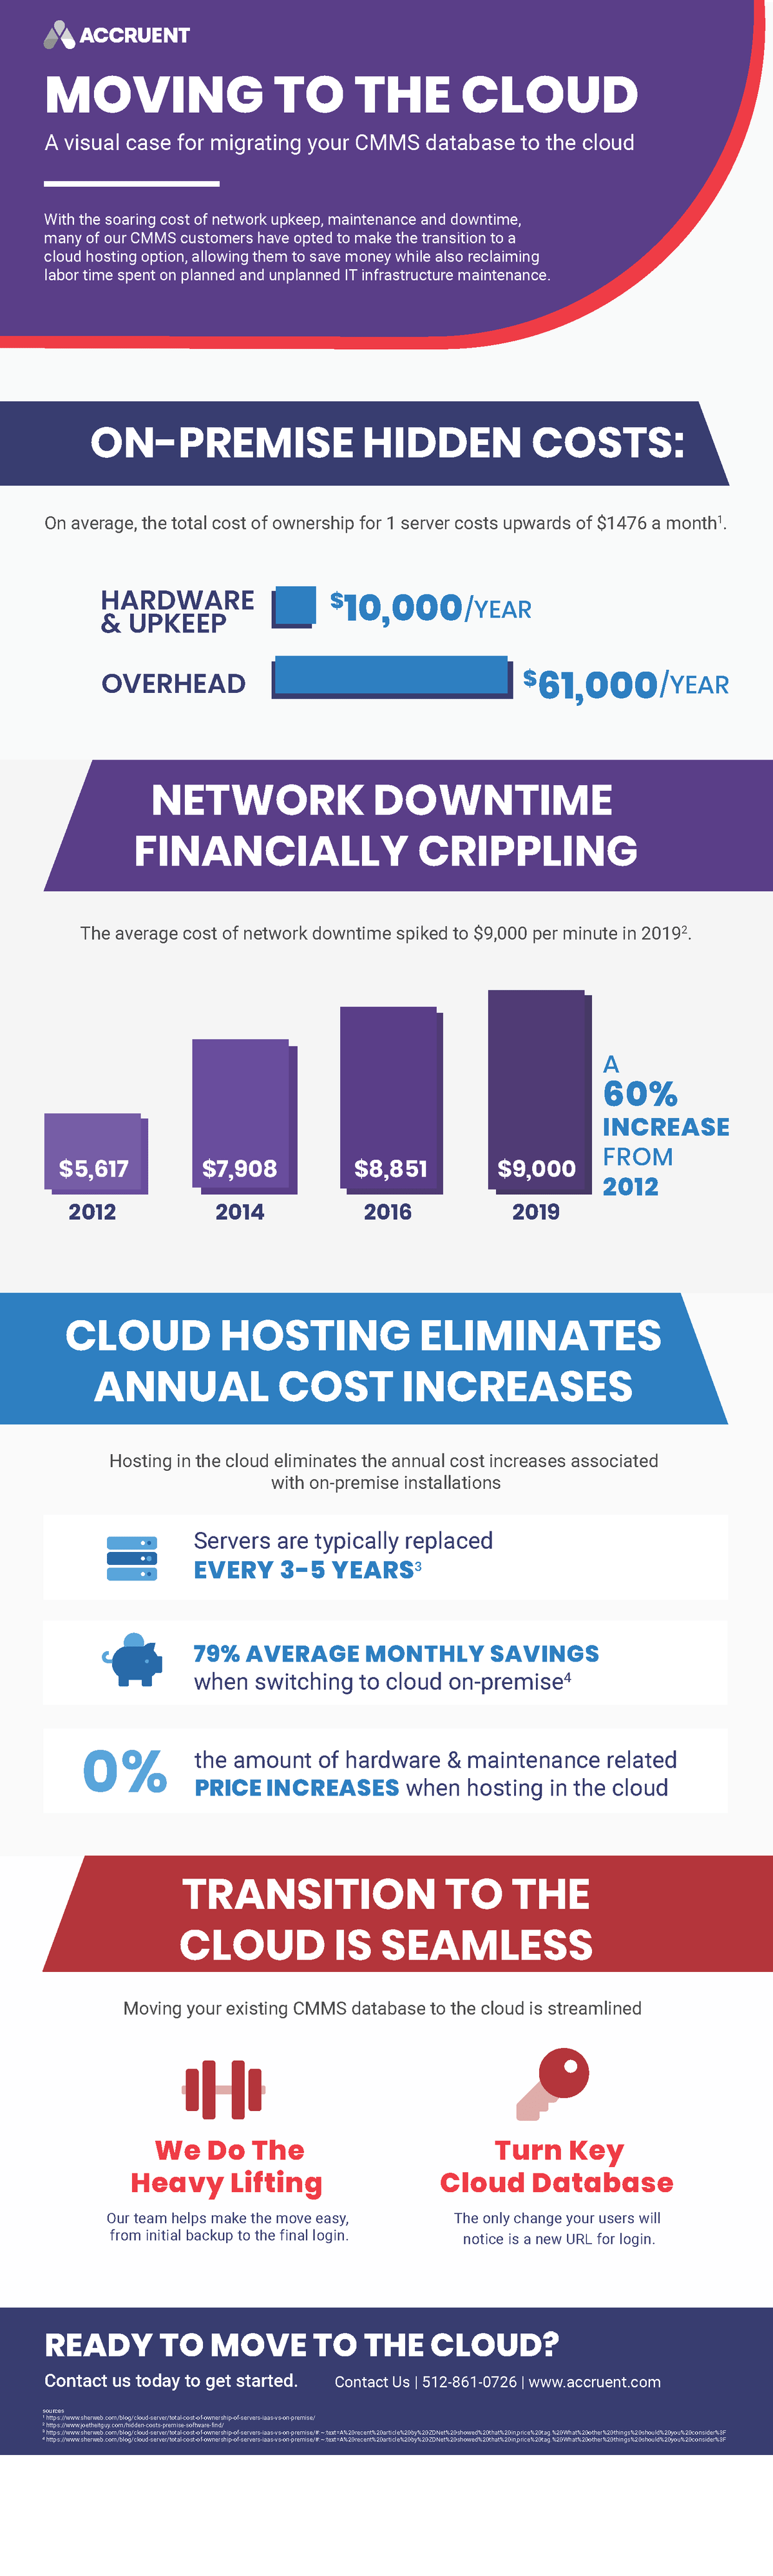 Accruent - Resources - Infographics - Moving to the Cloud - Hero